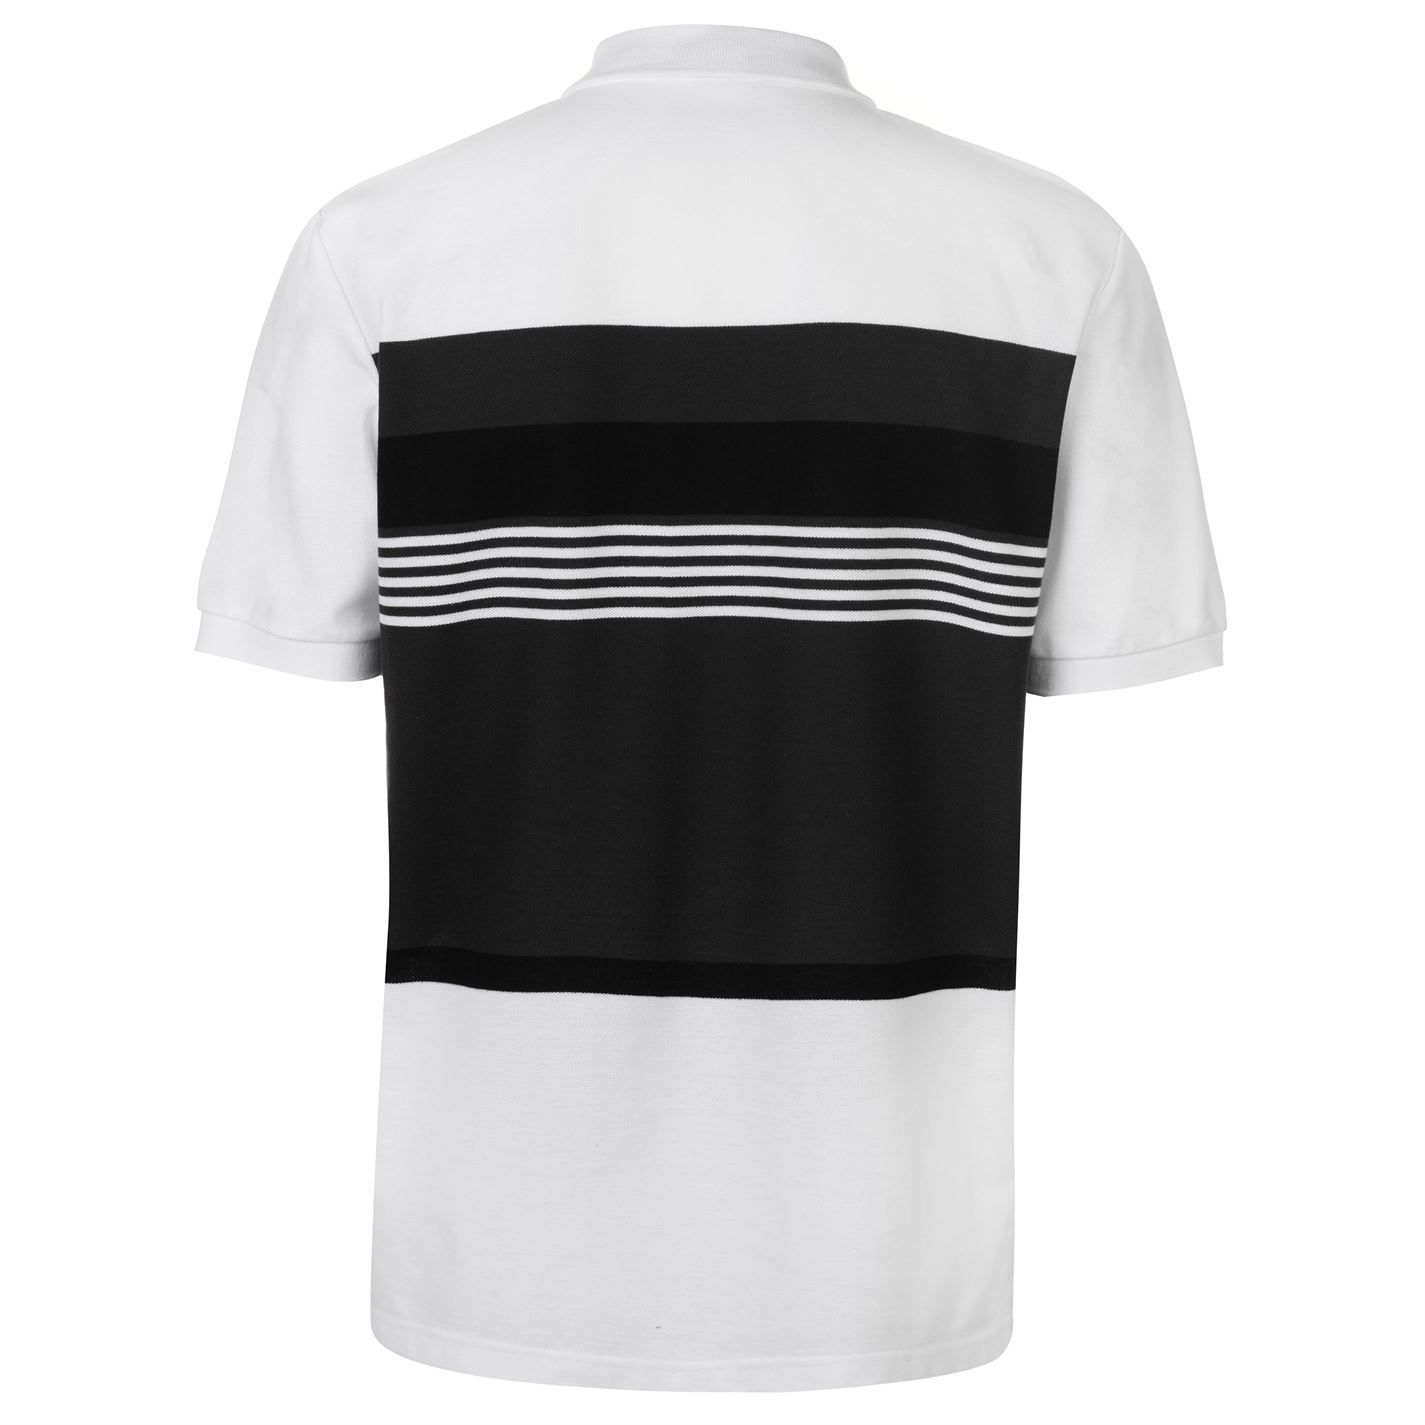 Lonsdale-Mens-Stripe-Polo-Shirt-Classic-Fit-Tee-Top-Short-Sleeve-Button-Placket thumbnail 14